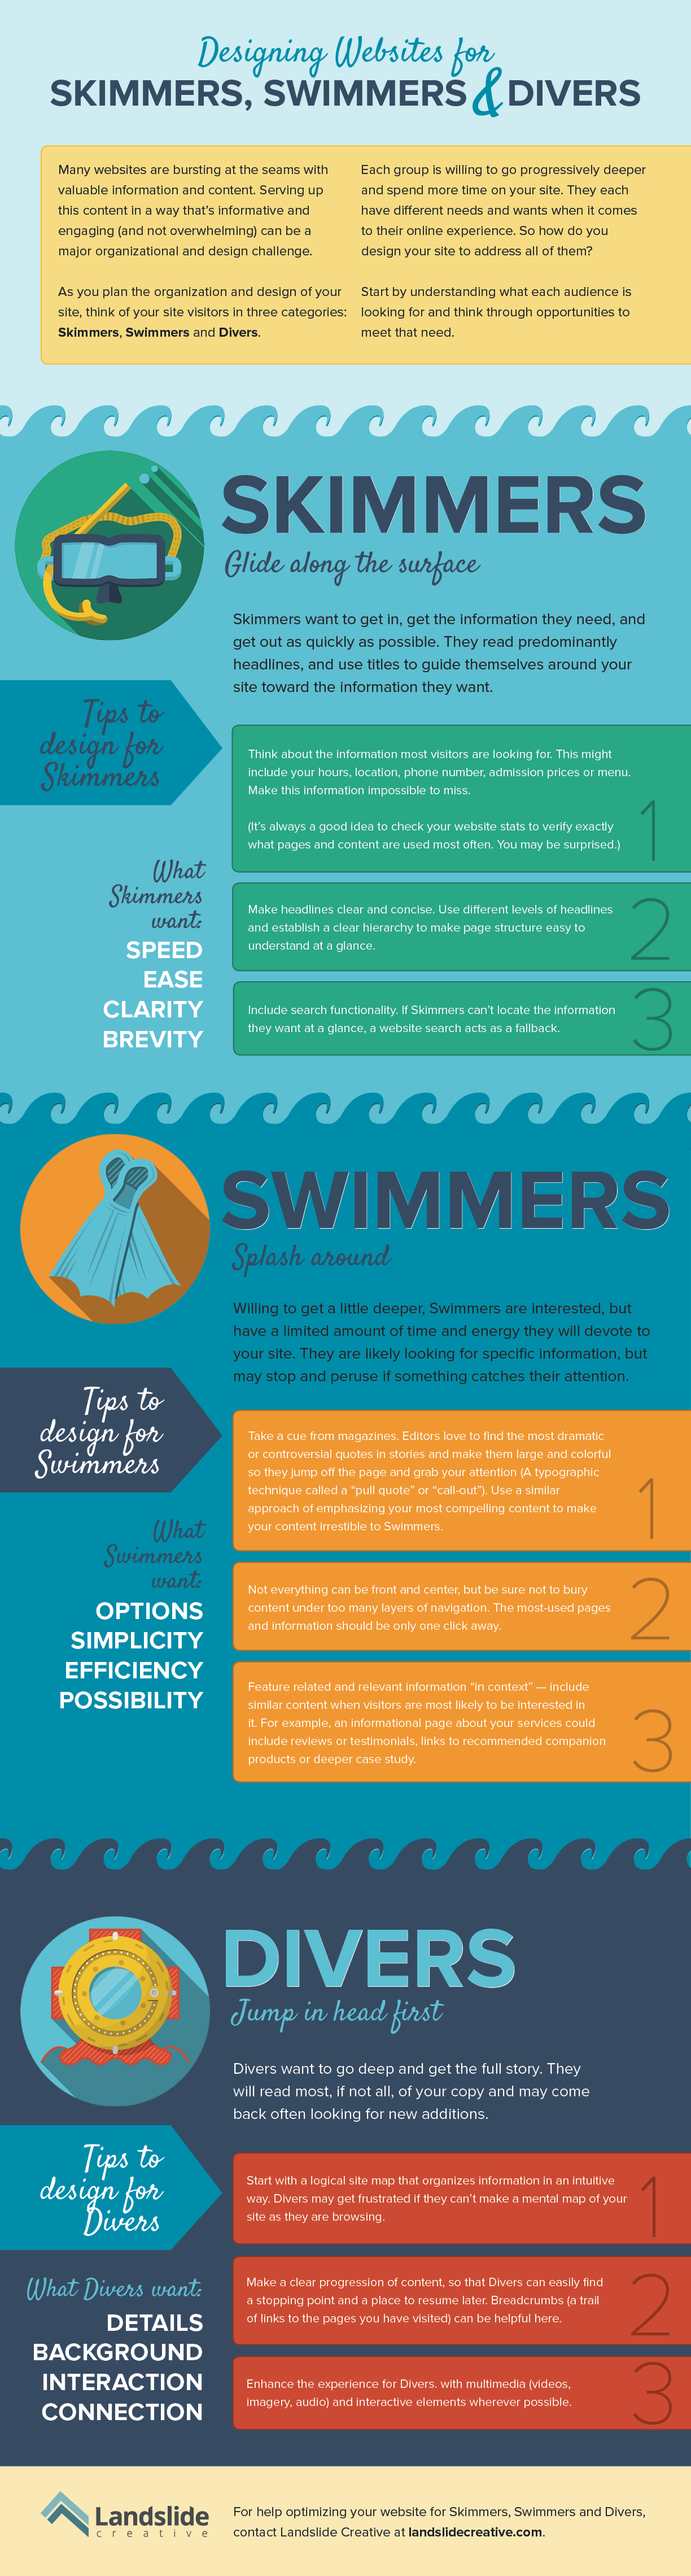 How To Create Content For Skimmers, Swimmers And Divers - #infographic